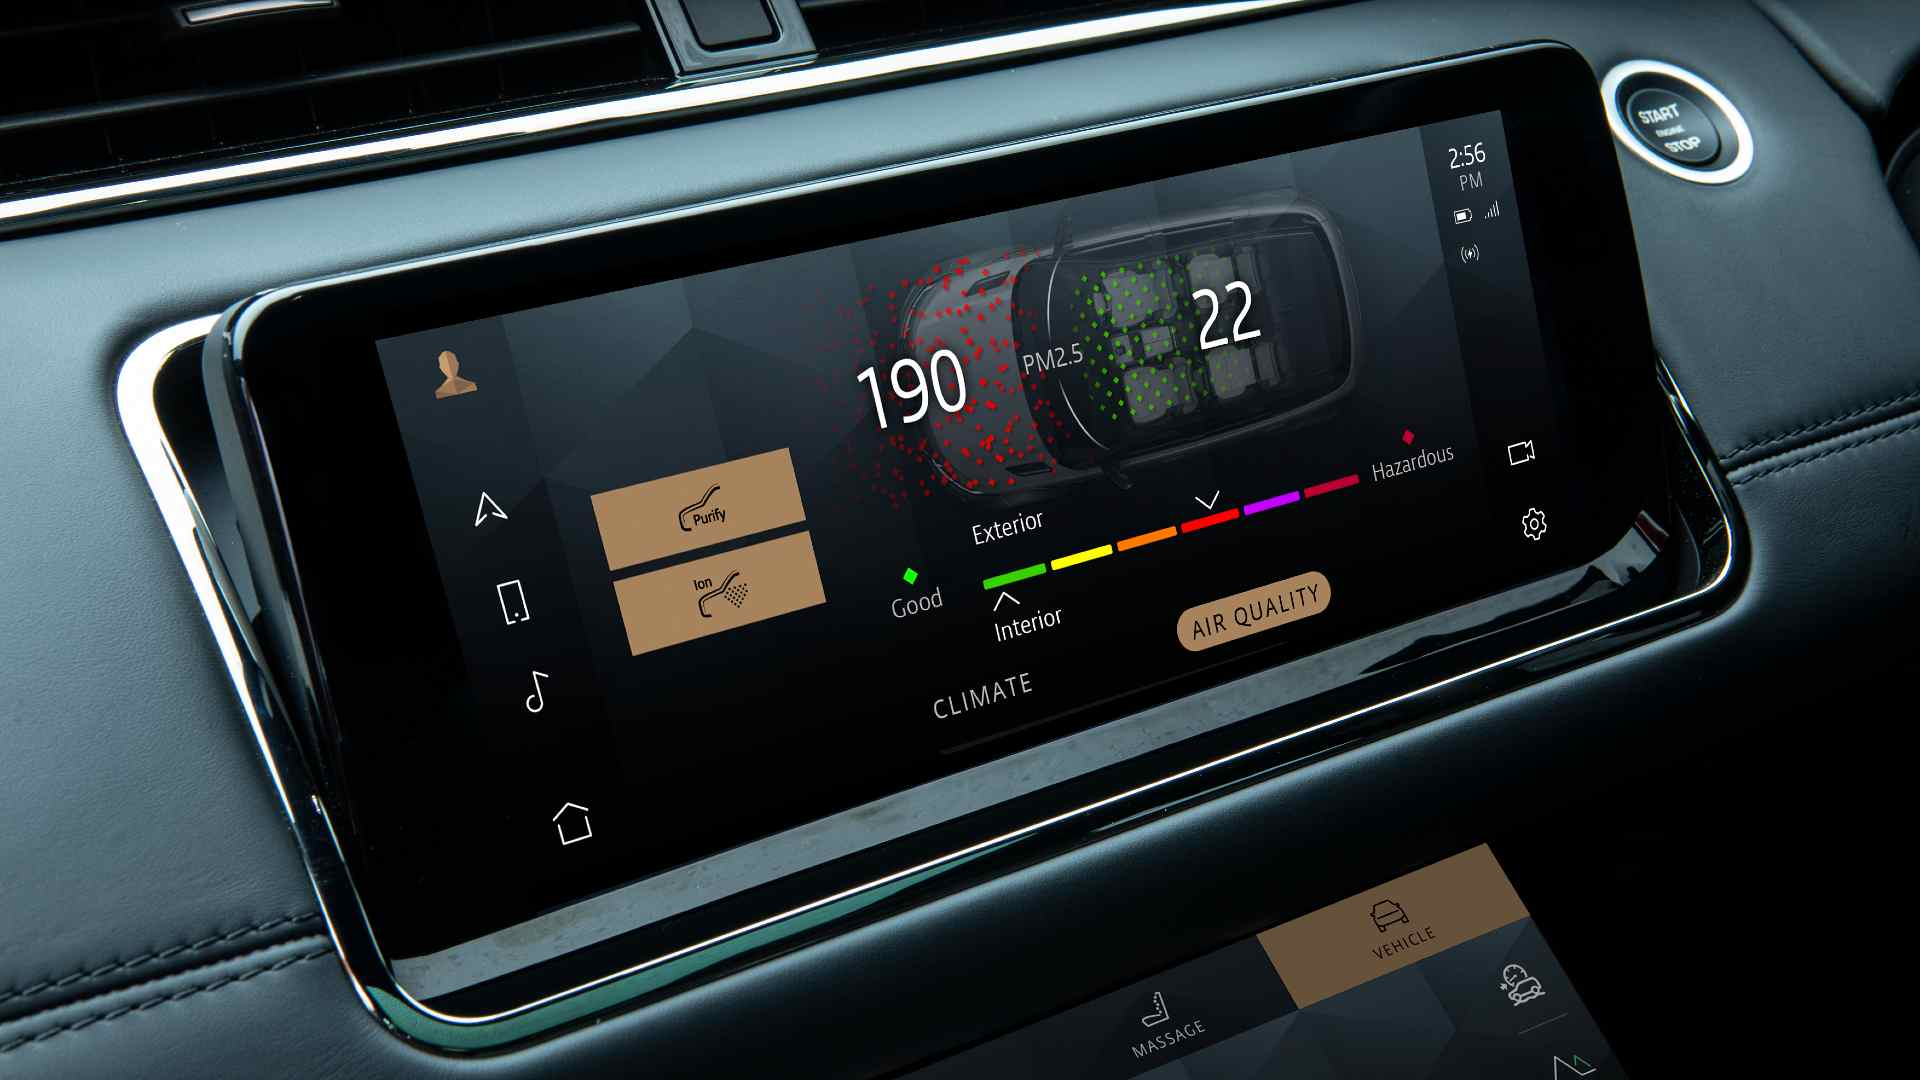 The ten-inch Pivi Pro infotainment system is new on the 2021 Range Rover Evoque. Image: Land Rover